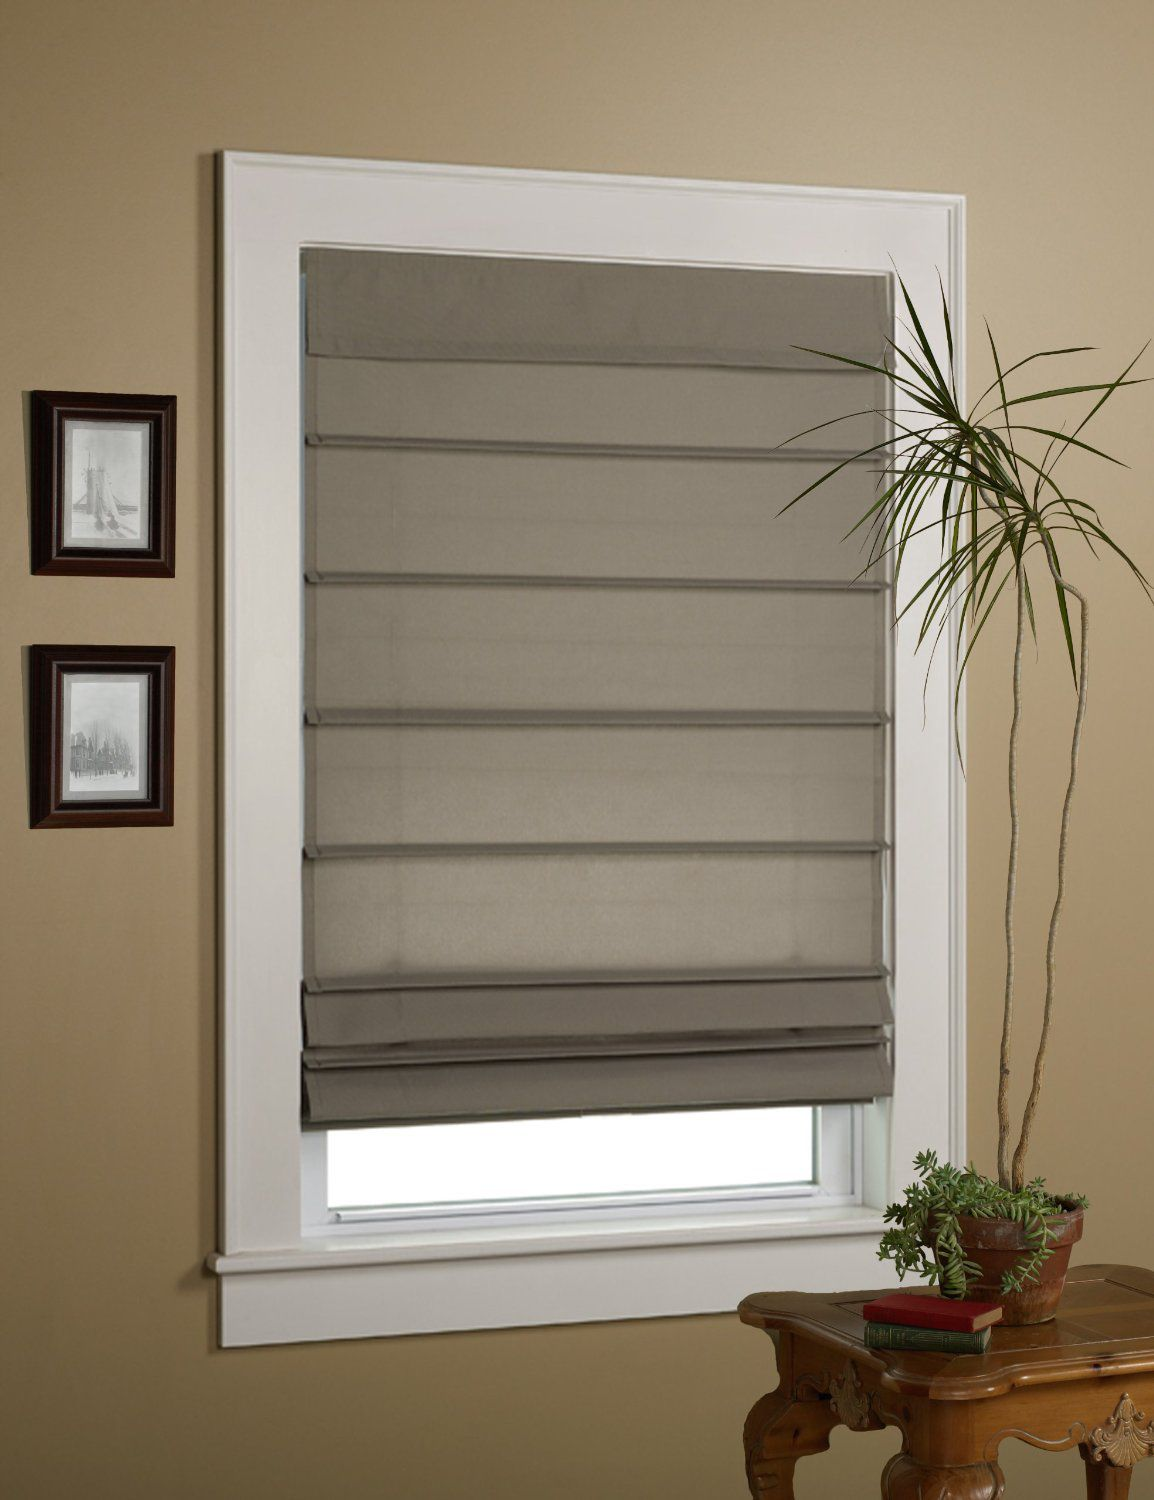 What Are The Different Types Of Window Shades